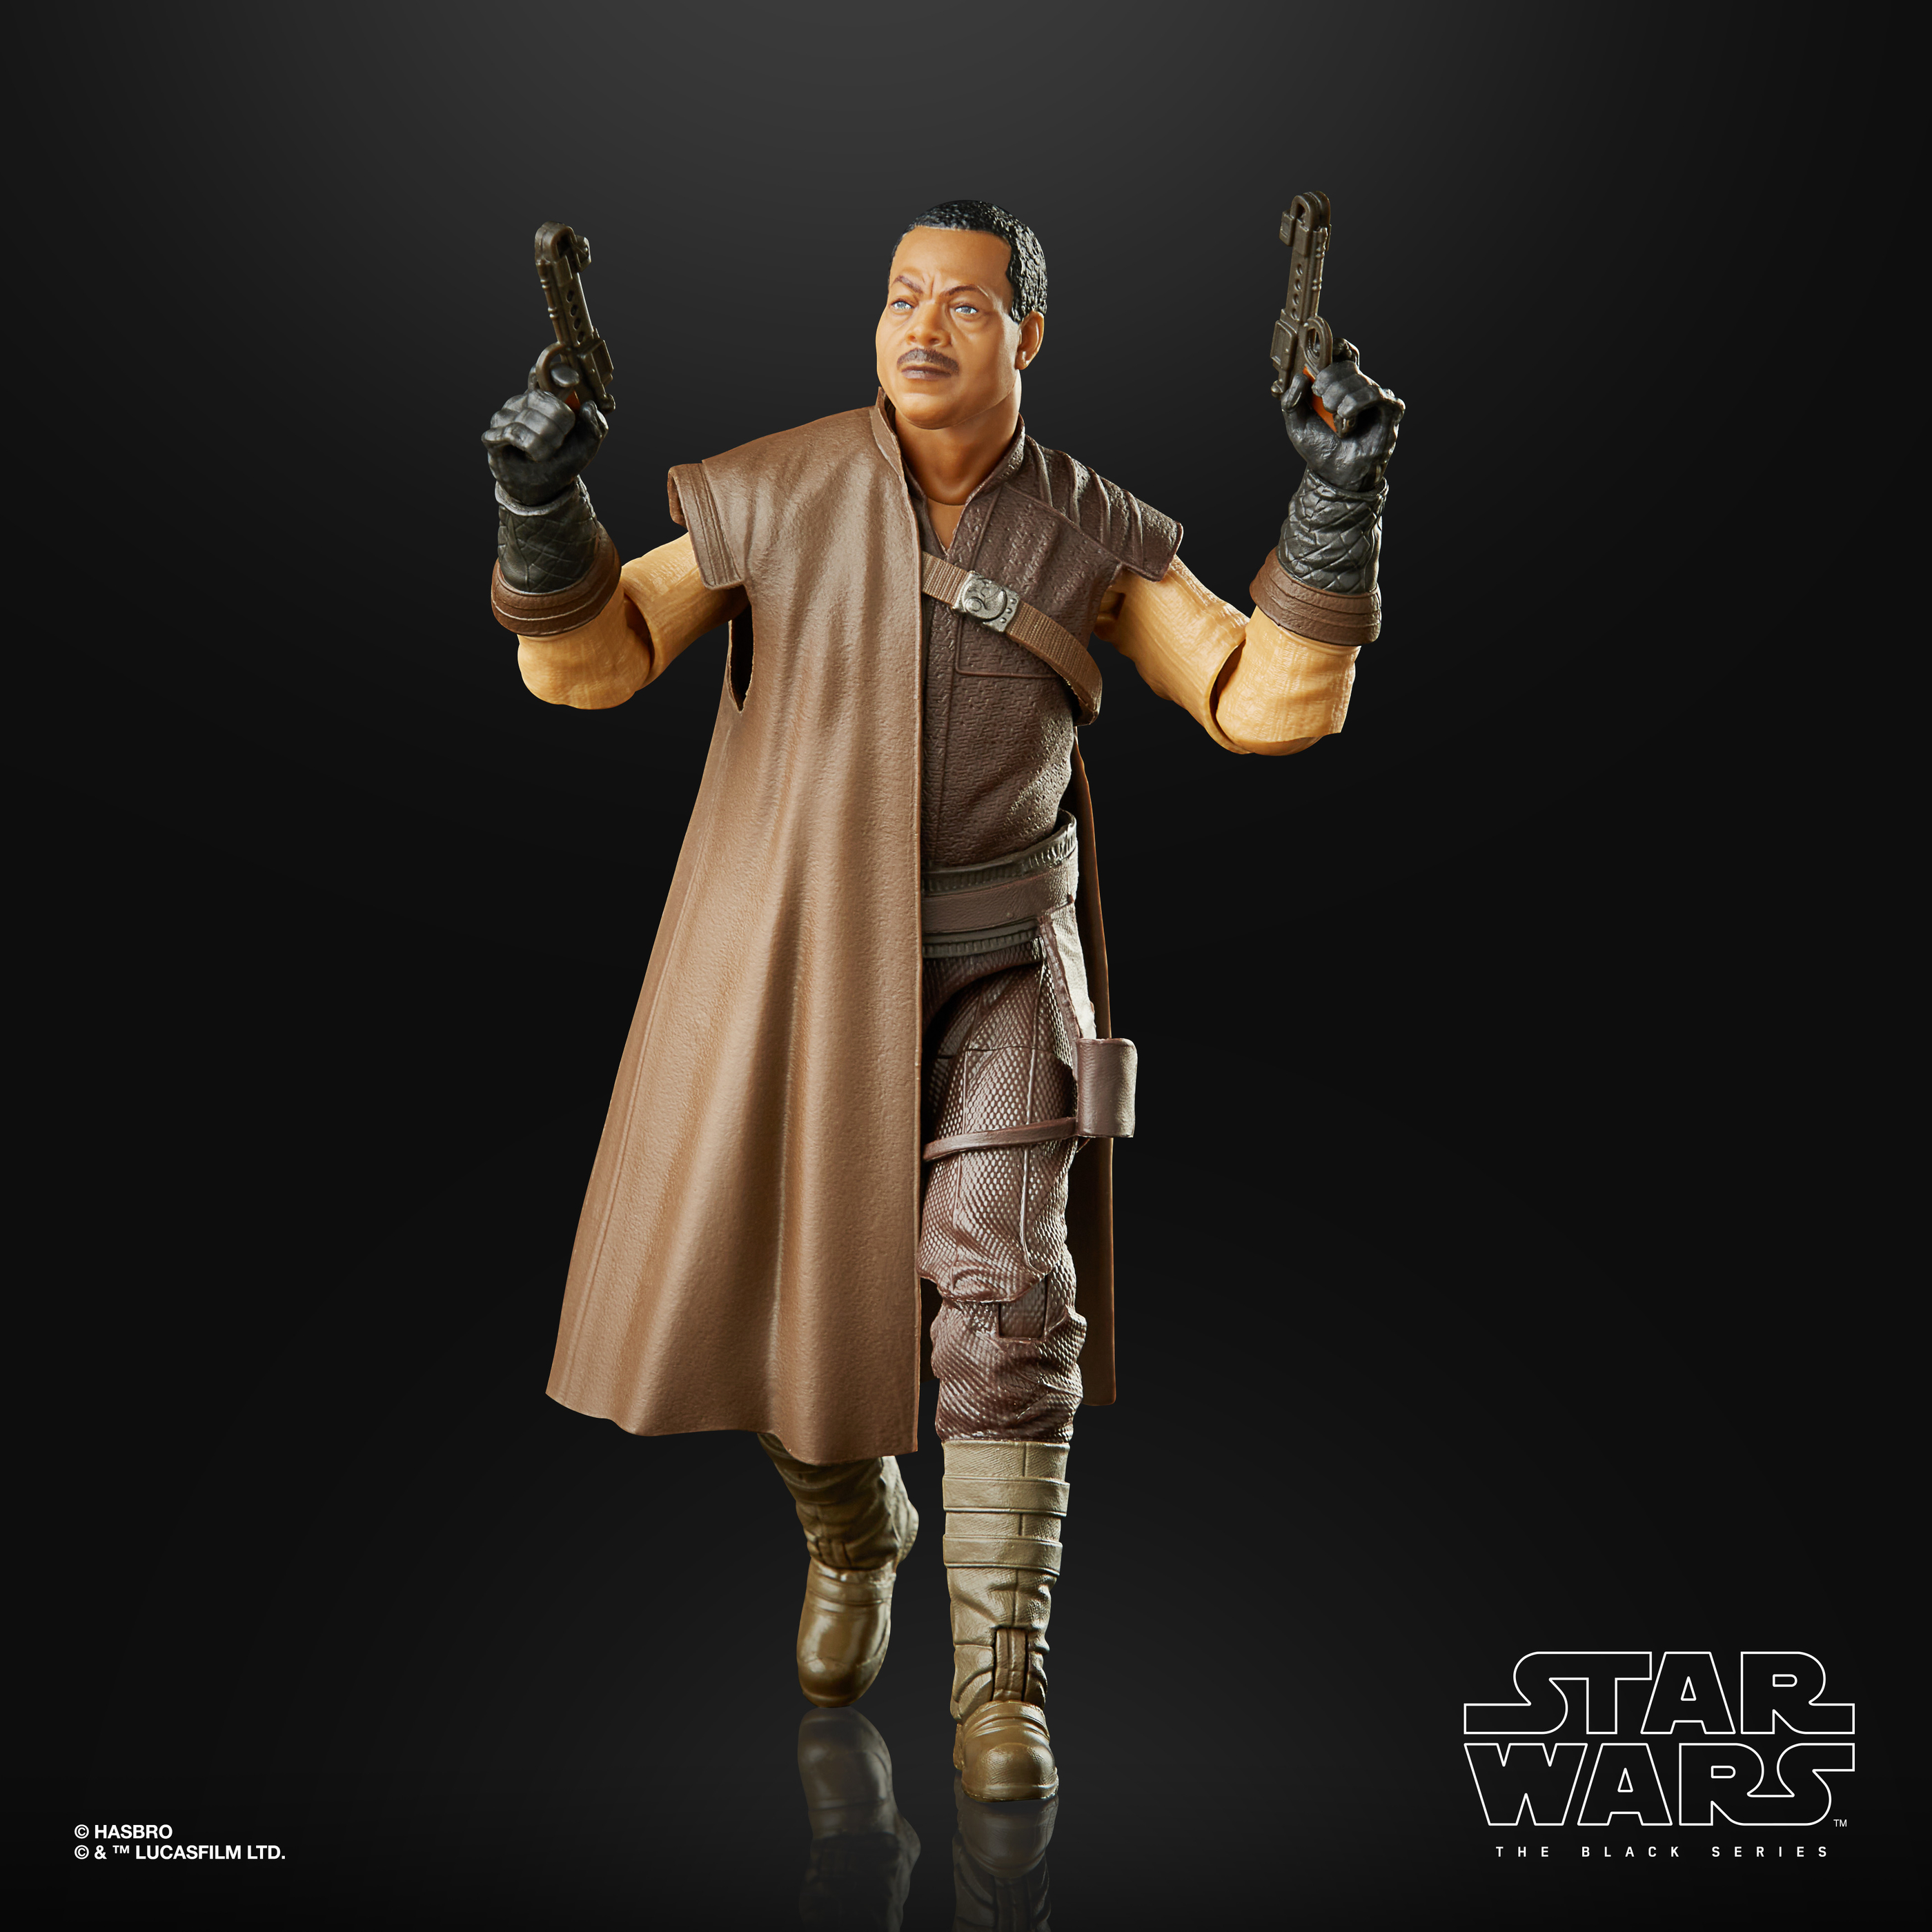 Star Wars - The Black Series - The Mandalorian - Greef Karga Action Figure